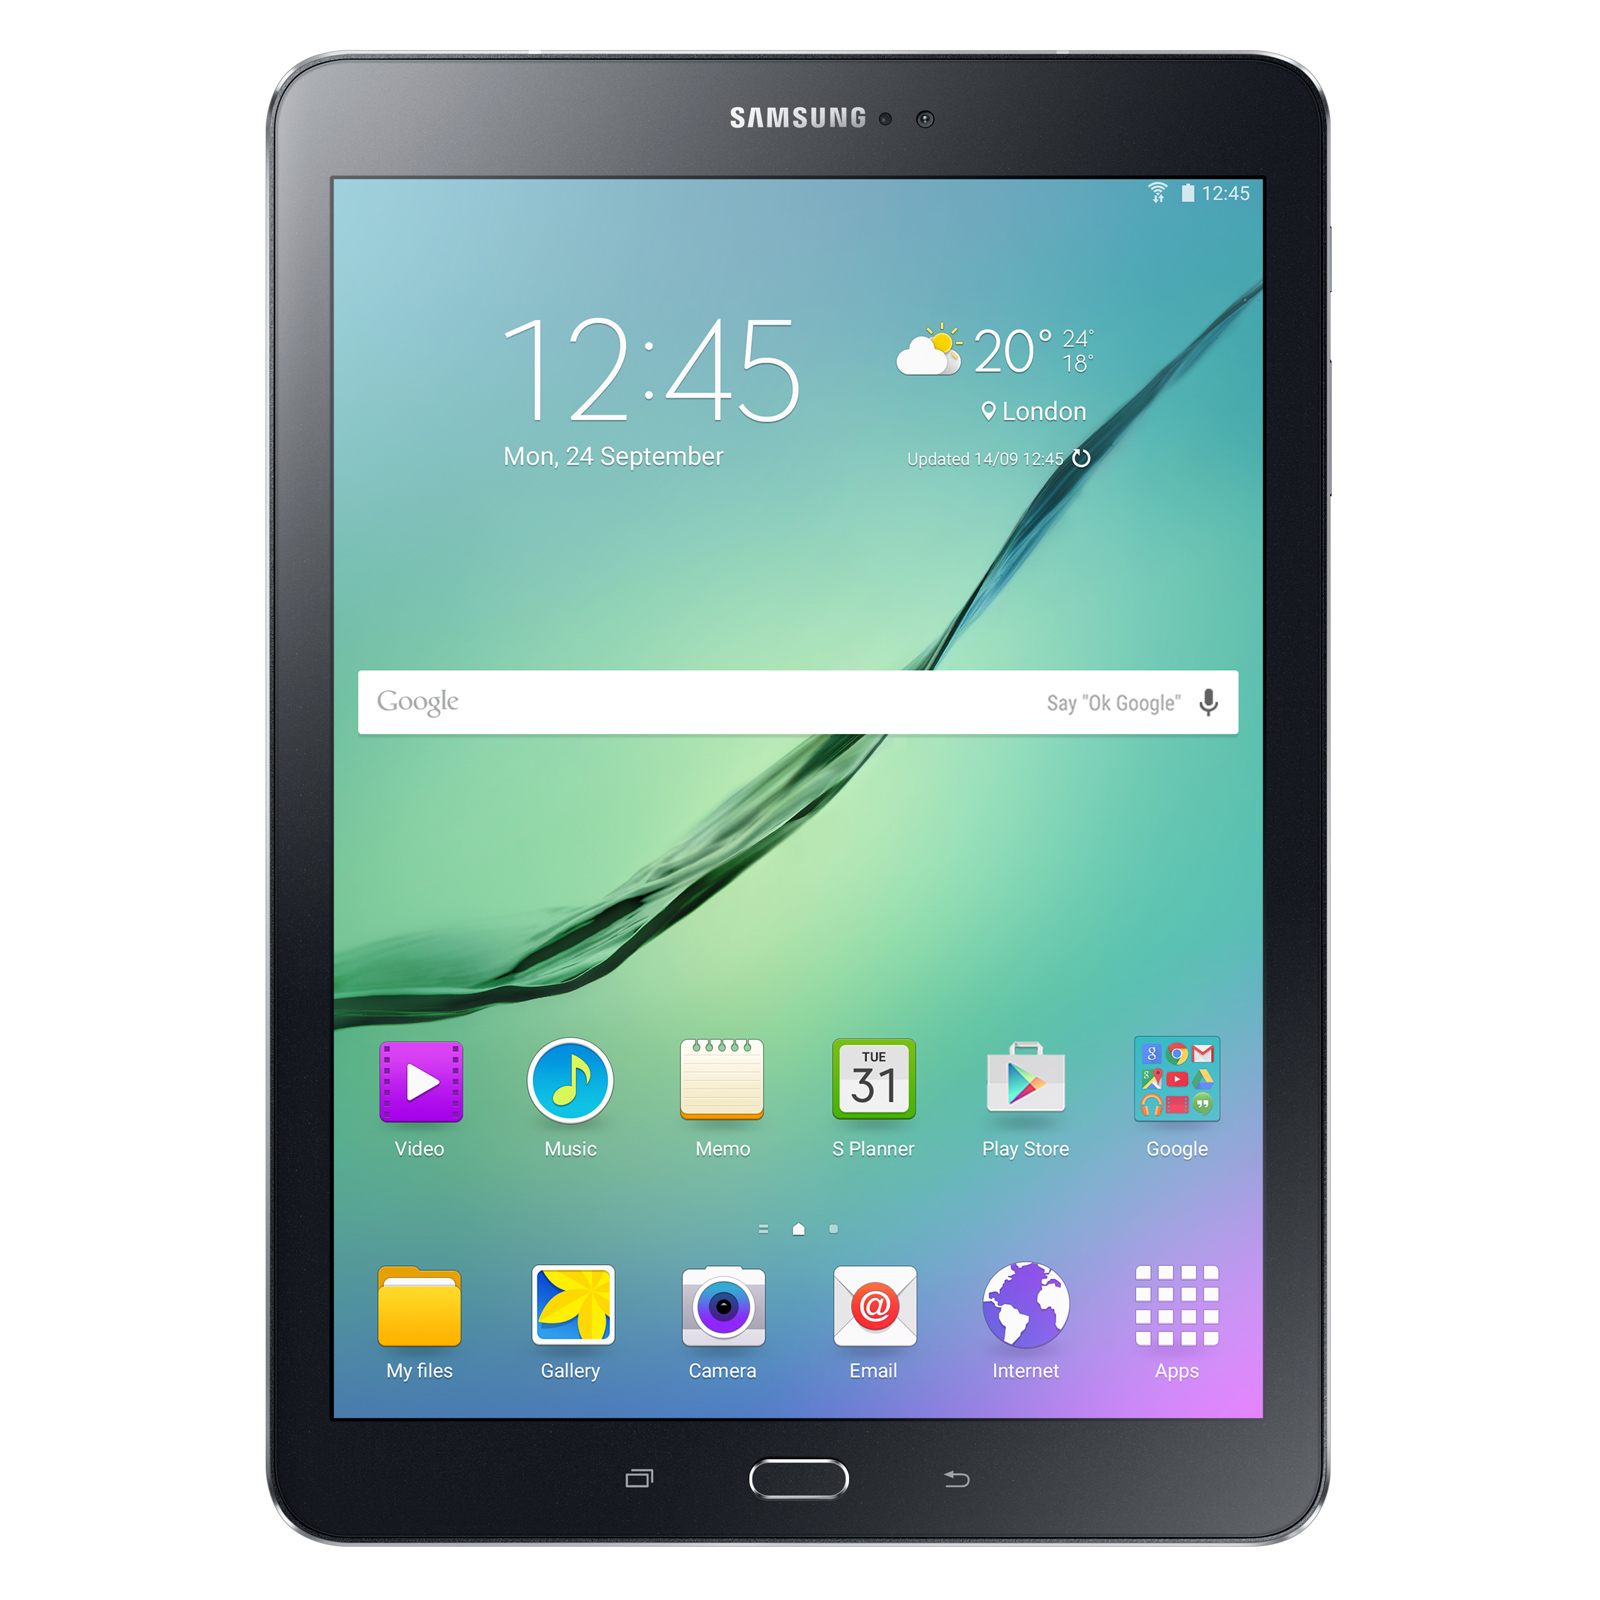 samsung galaxy tab s2 9 7 value edition sm t813 32 go noir tablette tactile samsung sur. Black Bedroom Furniture Sets. Home Design Ideas